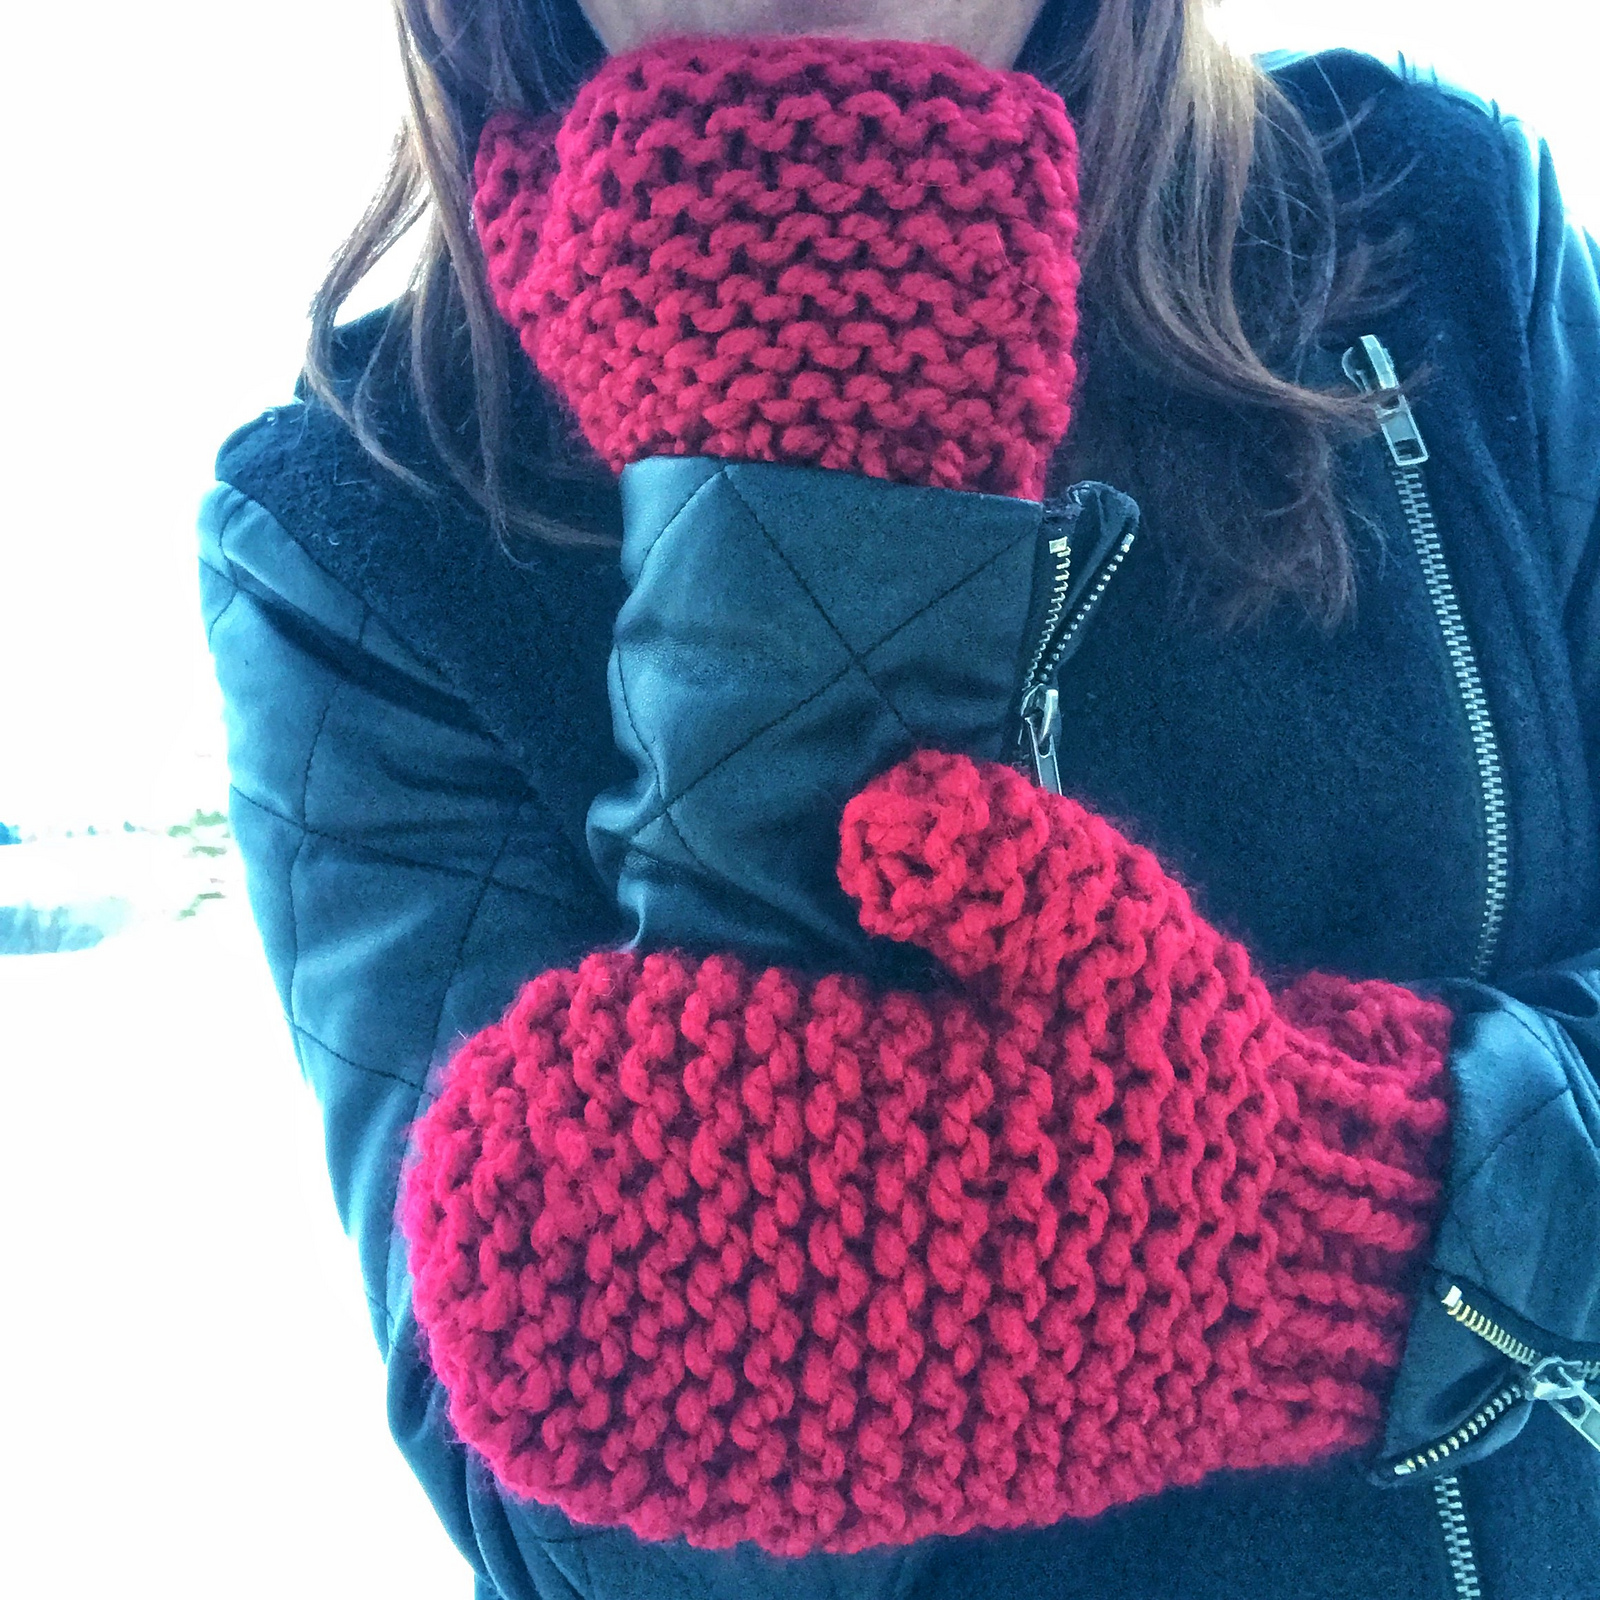 Knit Up 'The Quickest Mittens' With This Pattern Designed By Gina Jenkins